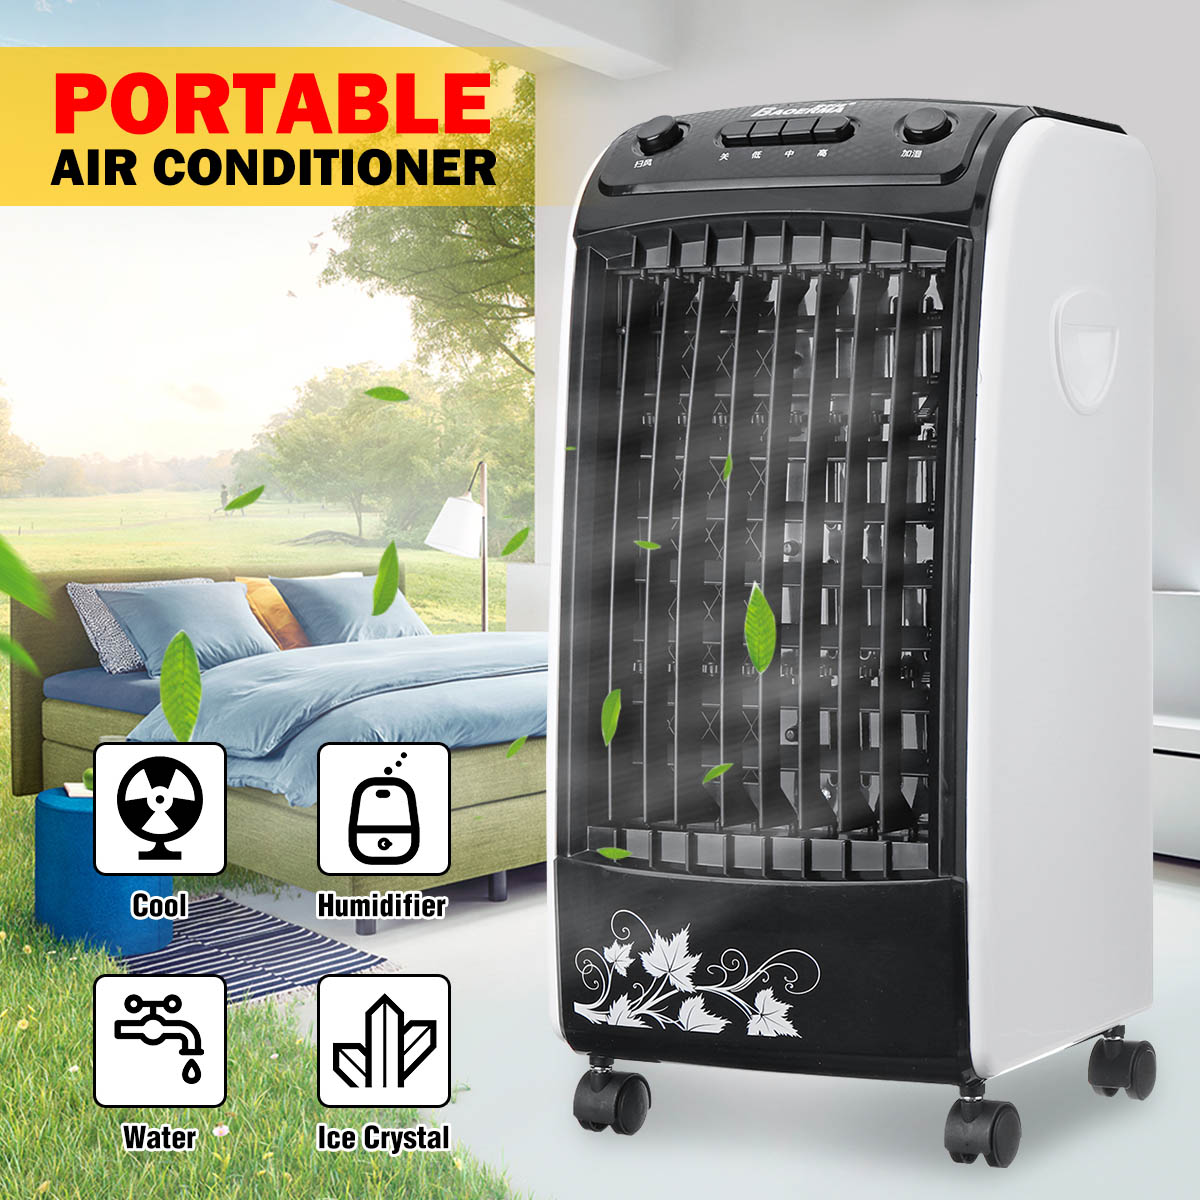 Portable Air Conditioner Conditioning Fan Humidifier 220V Home Electric Cooler Ventilator Air Conditioning With 5 Ice Crystal